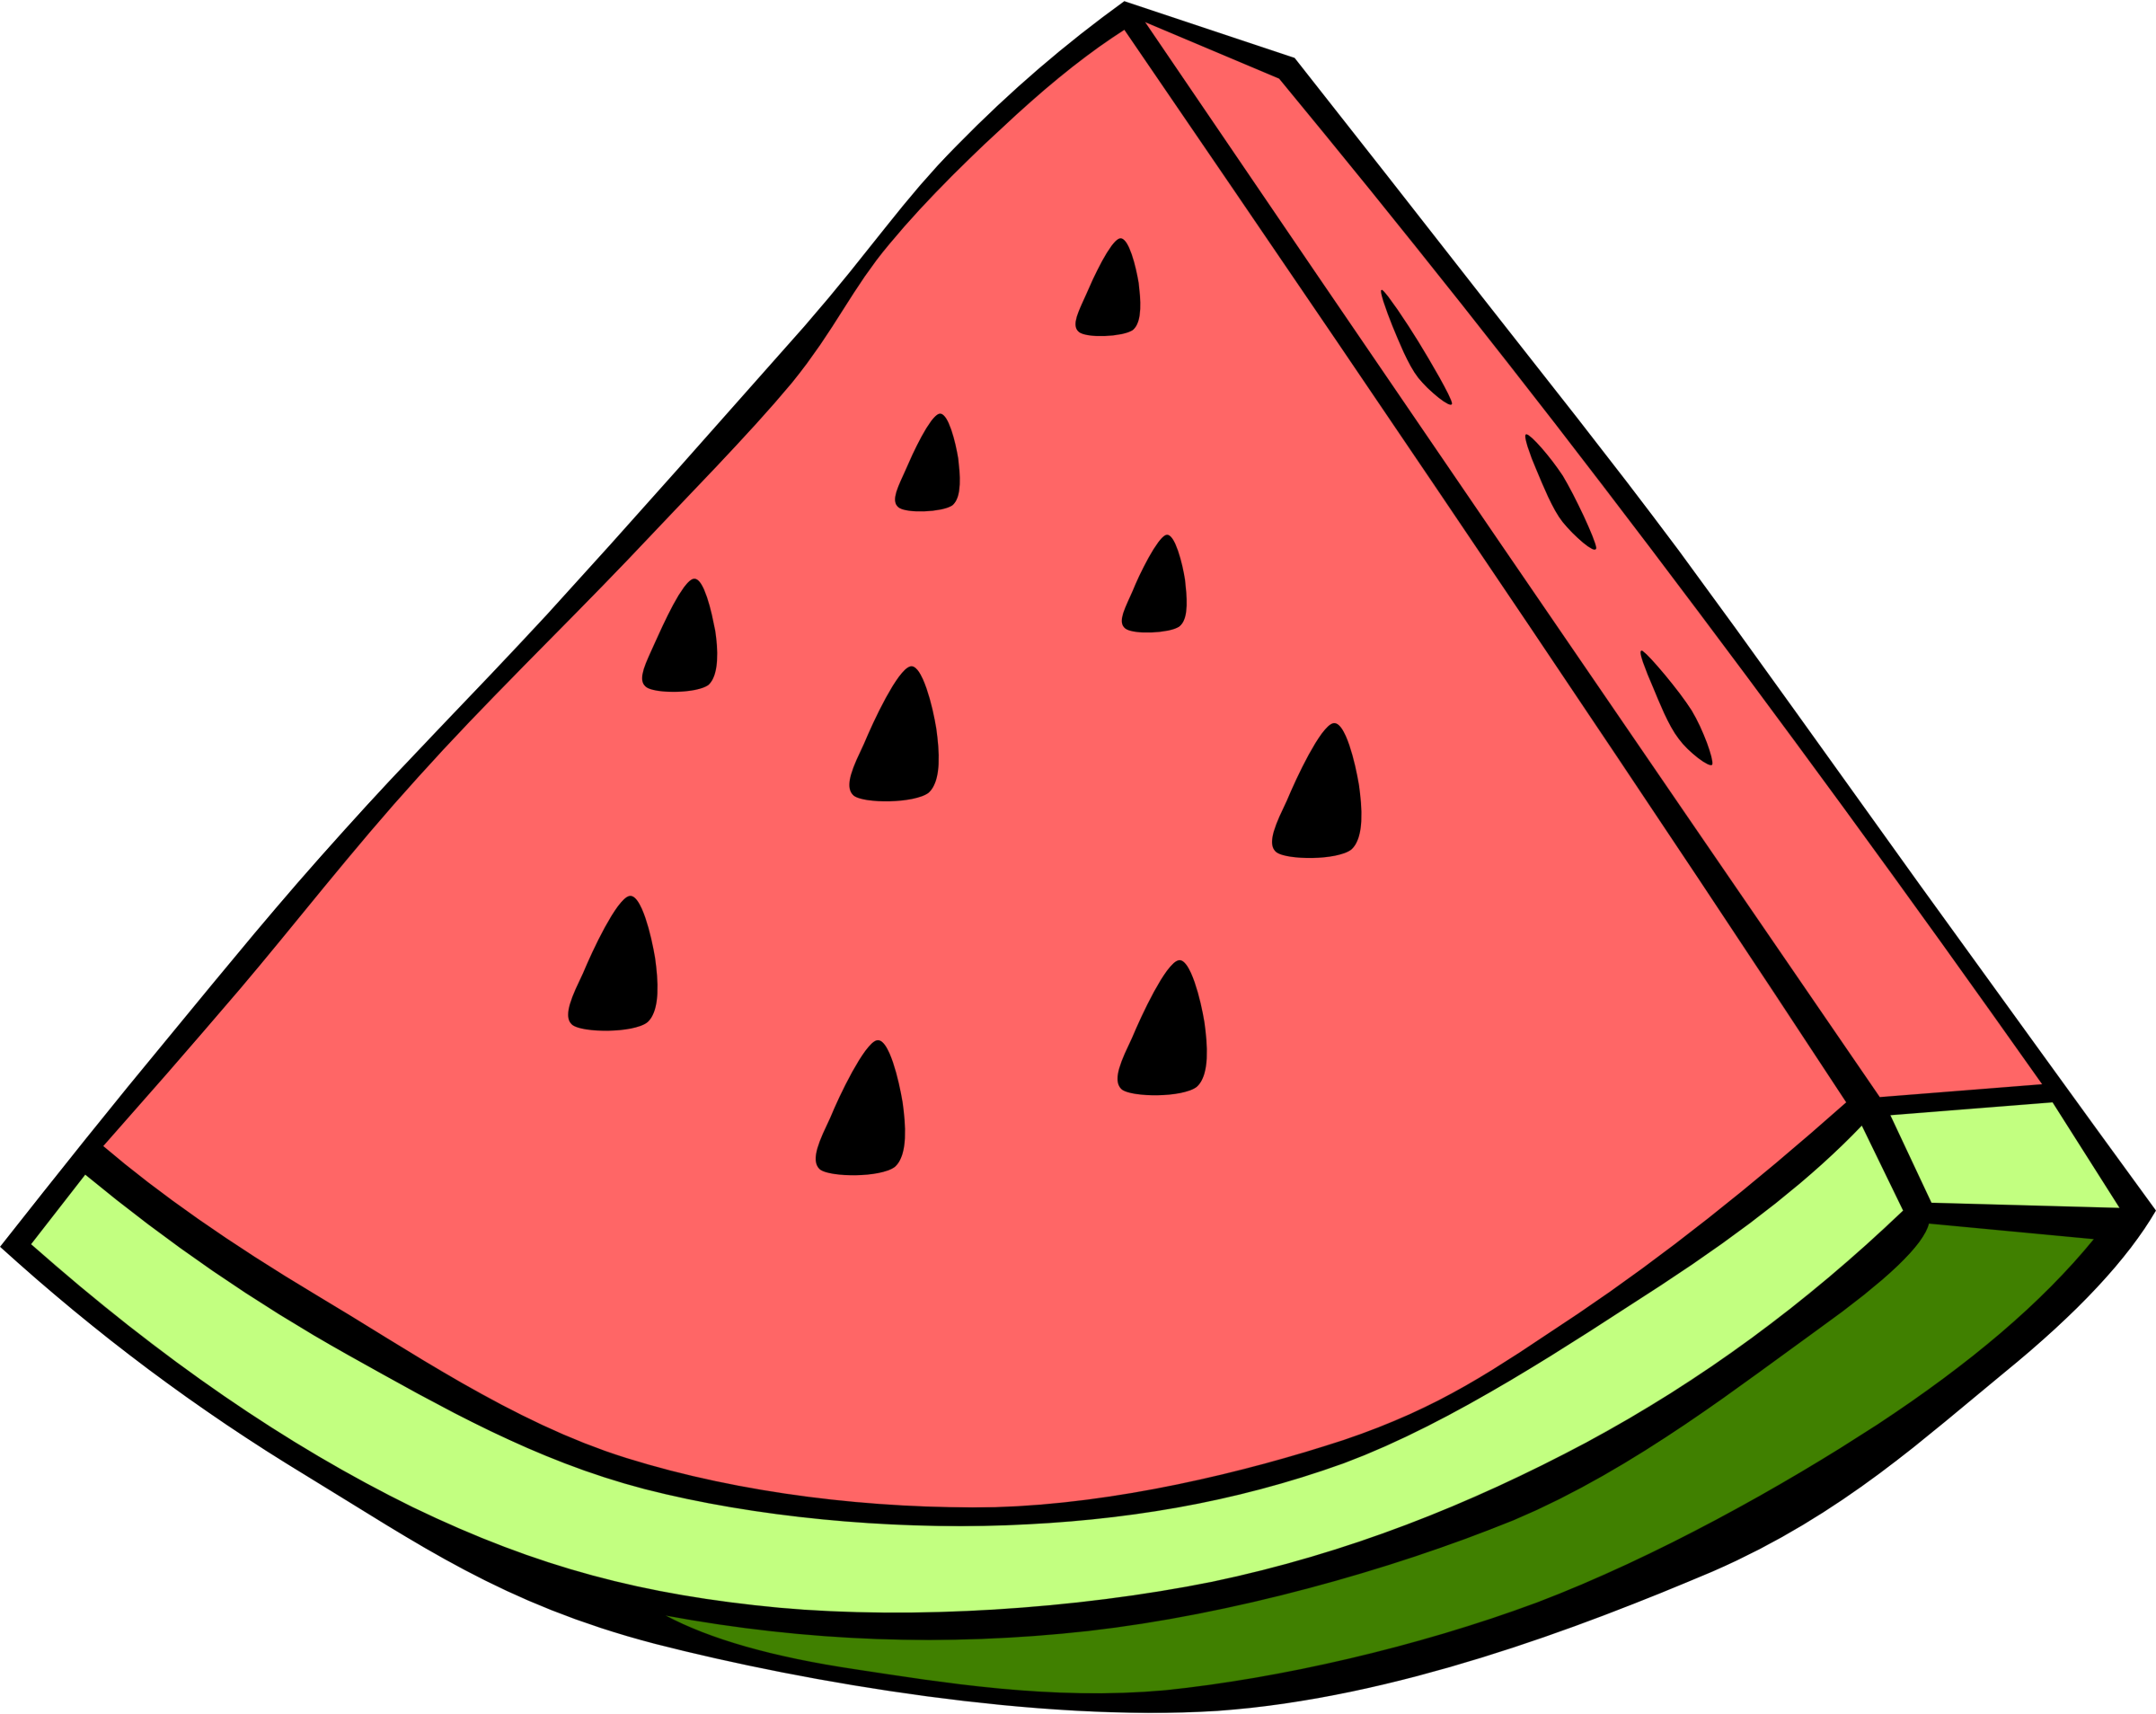 Pie clipart tumblr cartoon. Simple fruit watermelon by